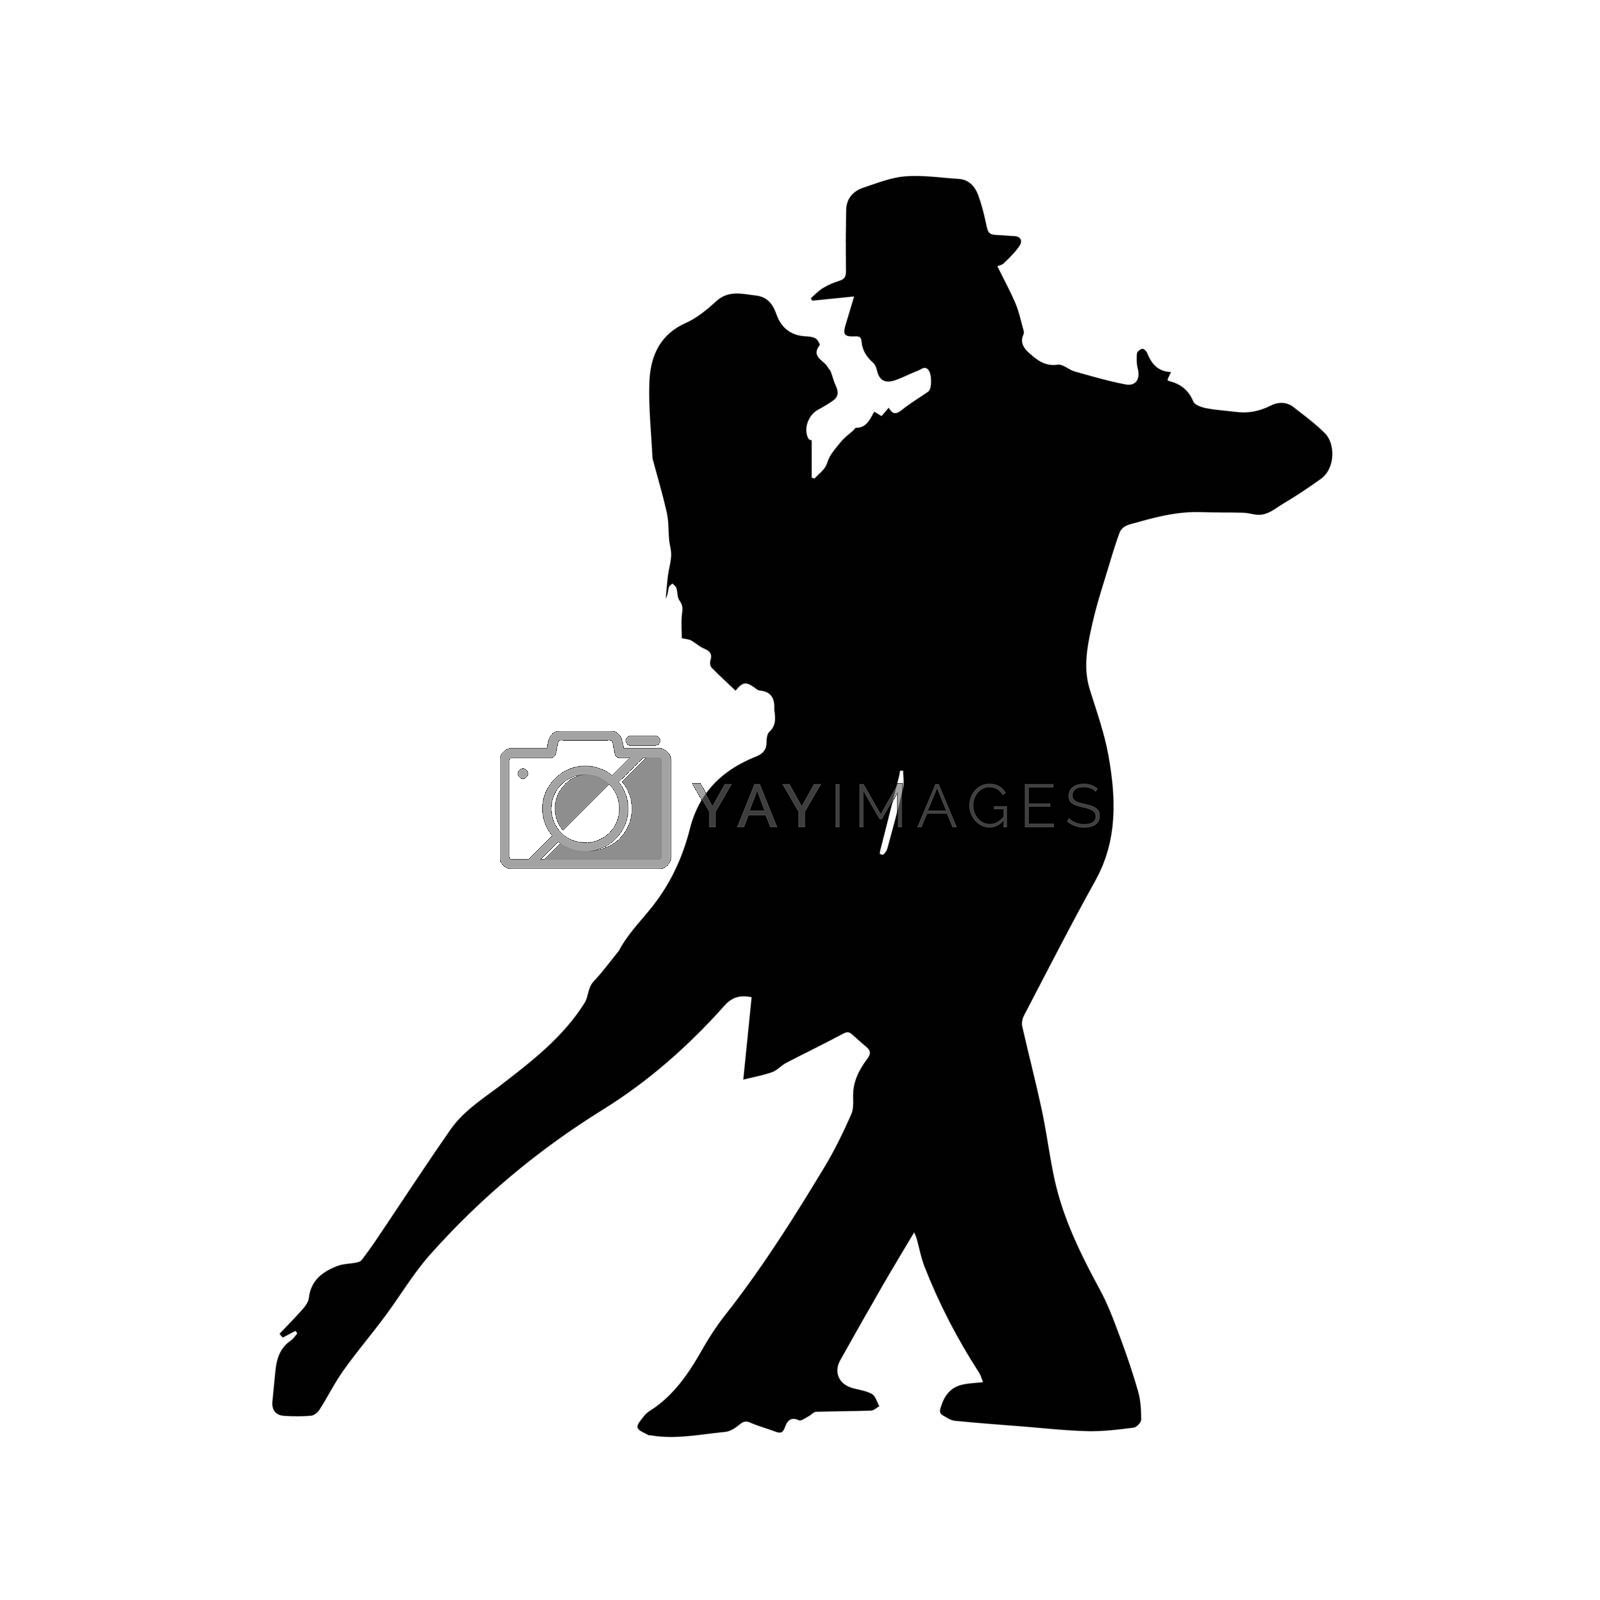 Silhouette of a pair of dancers, a couple dancing tango